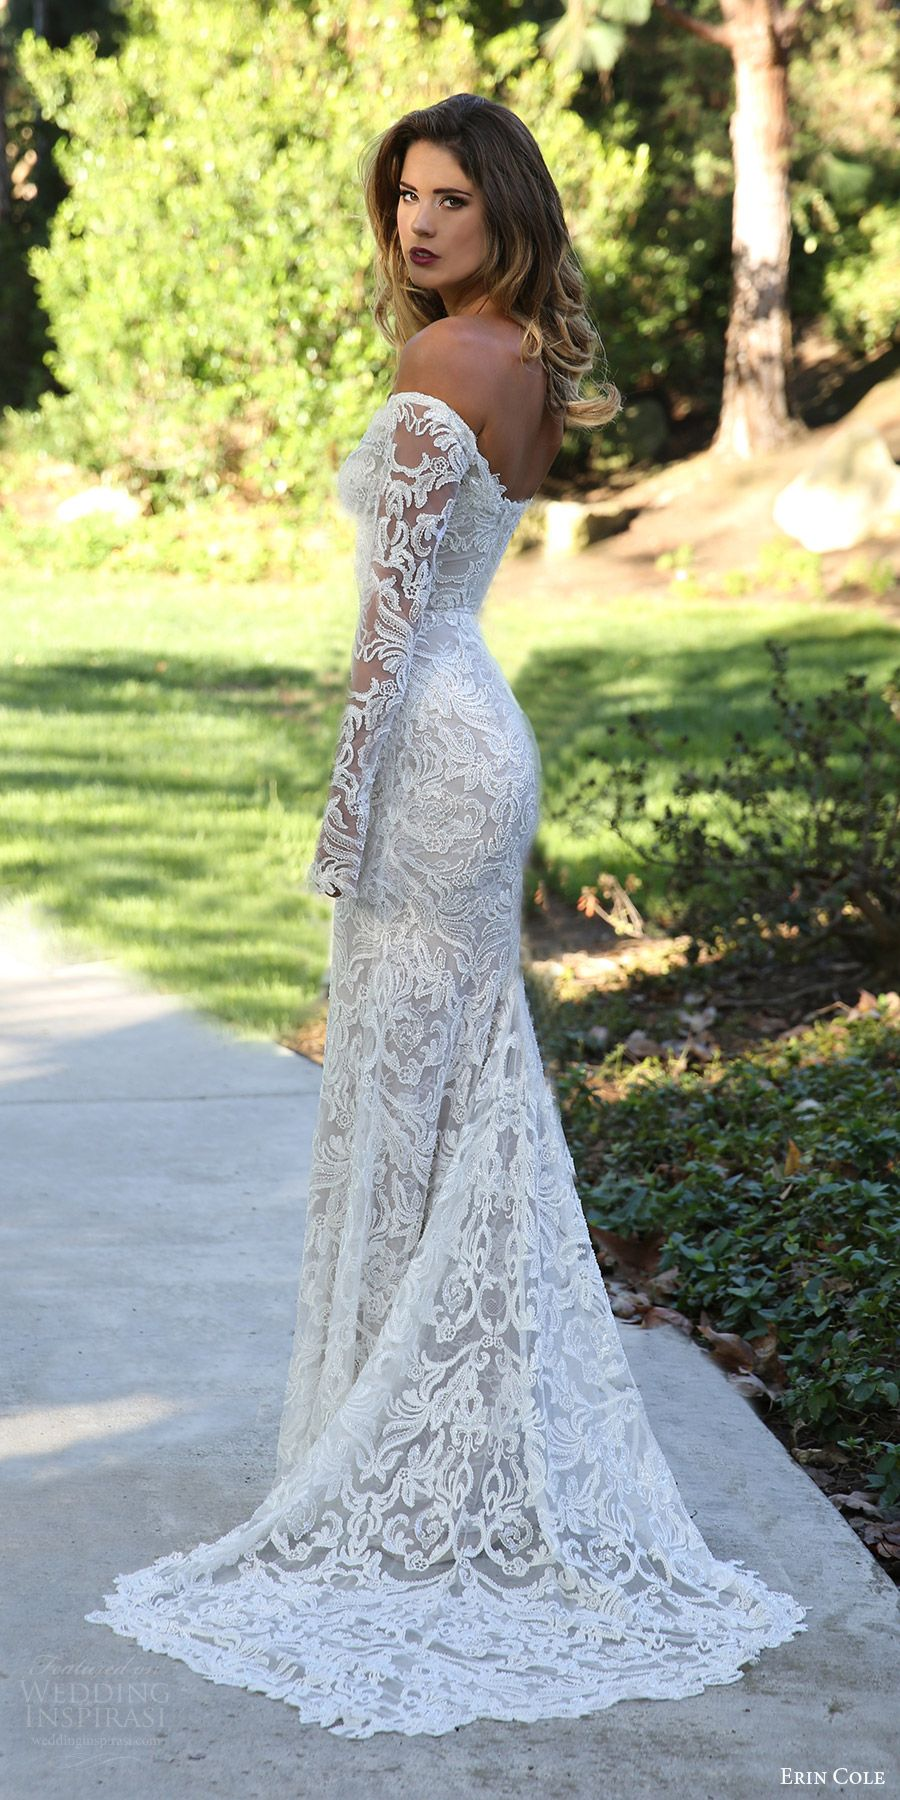 Erin Cole Fall 2017 Bridal Off Shoulder Long Sleeves Beaded Lace Sheath Wedding Dress Antoinette Mv Pointed Train Elegant More